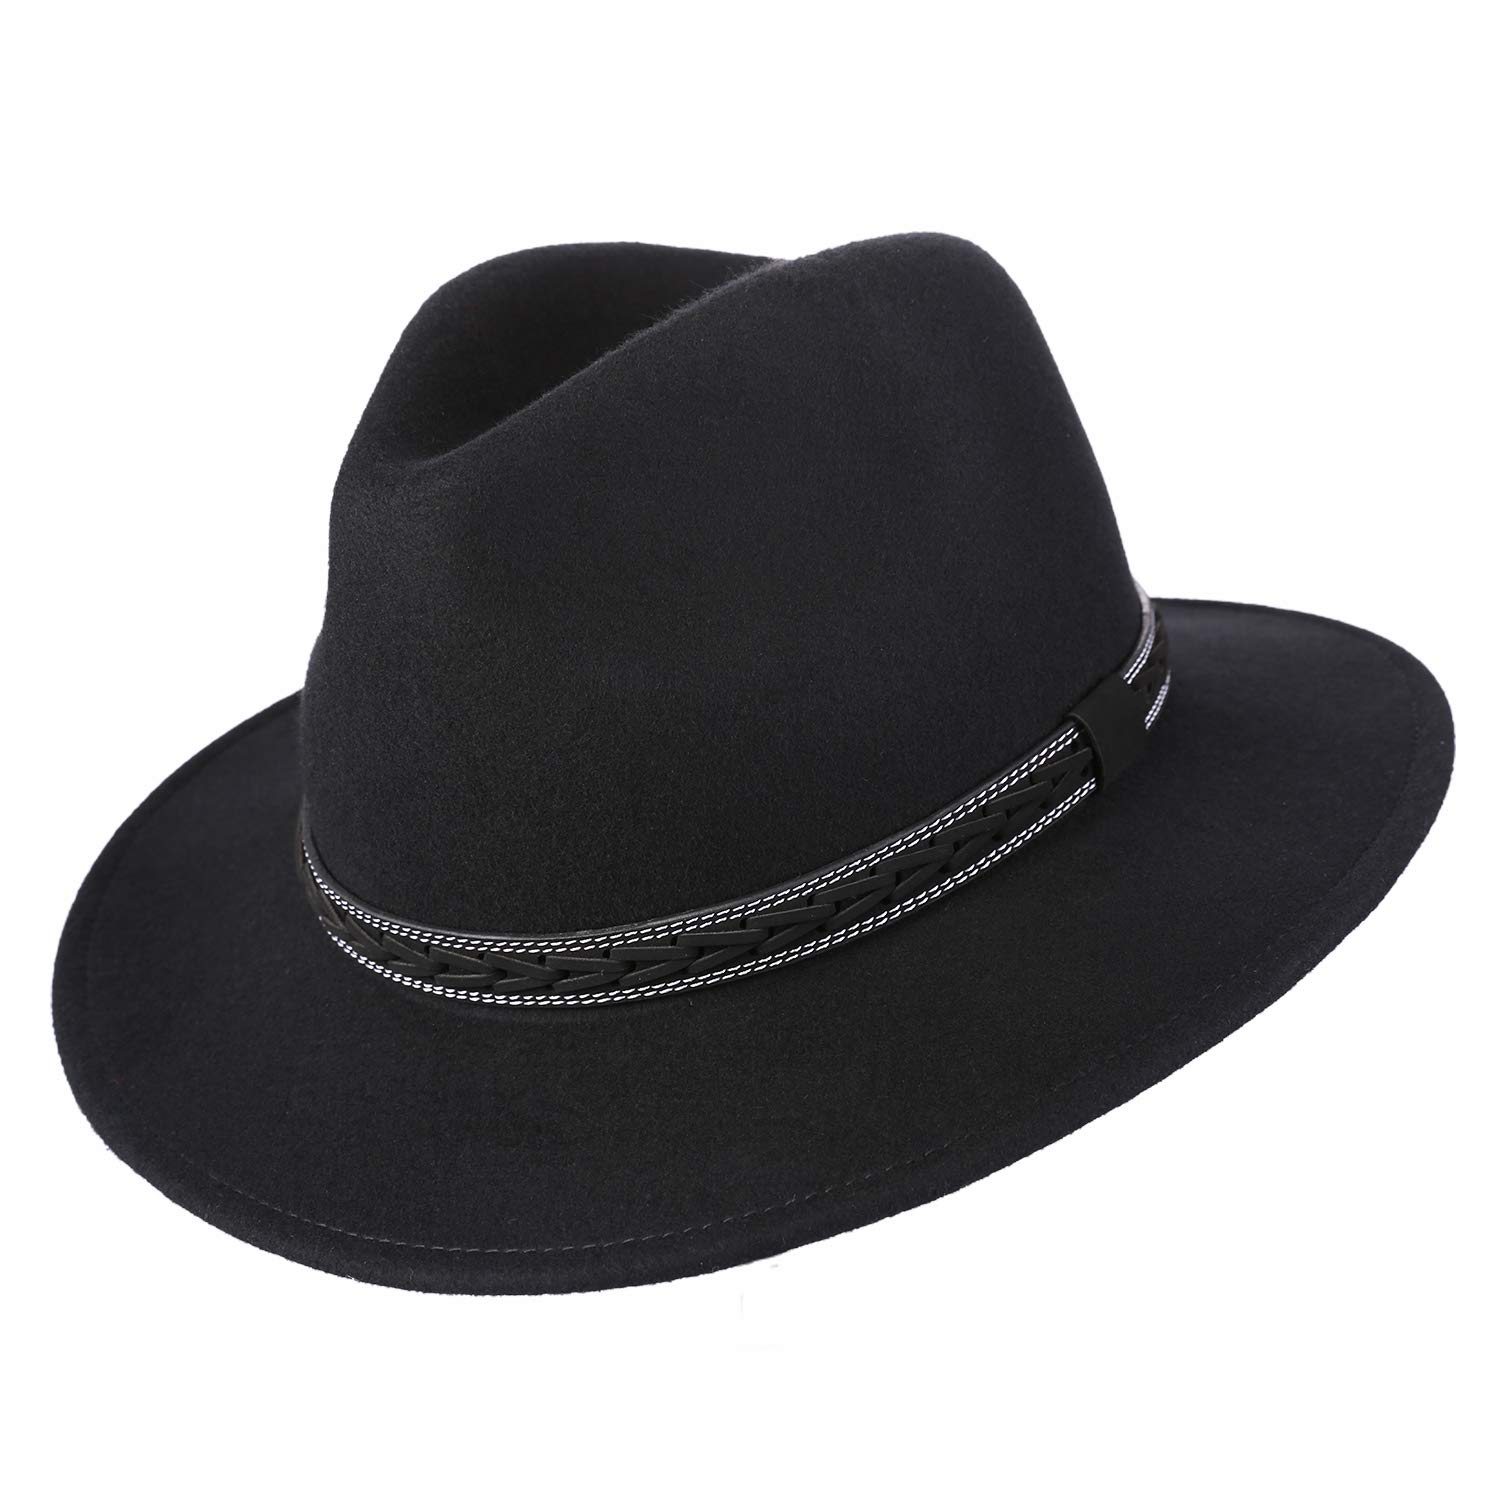 25701545d5af1 Janetshats Unisex Classic Fedora Hats Wool Felt Trilby Hat with Bowknot  Feather Black at Amazon Men s Clothing store